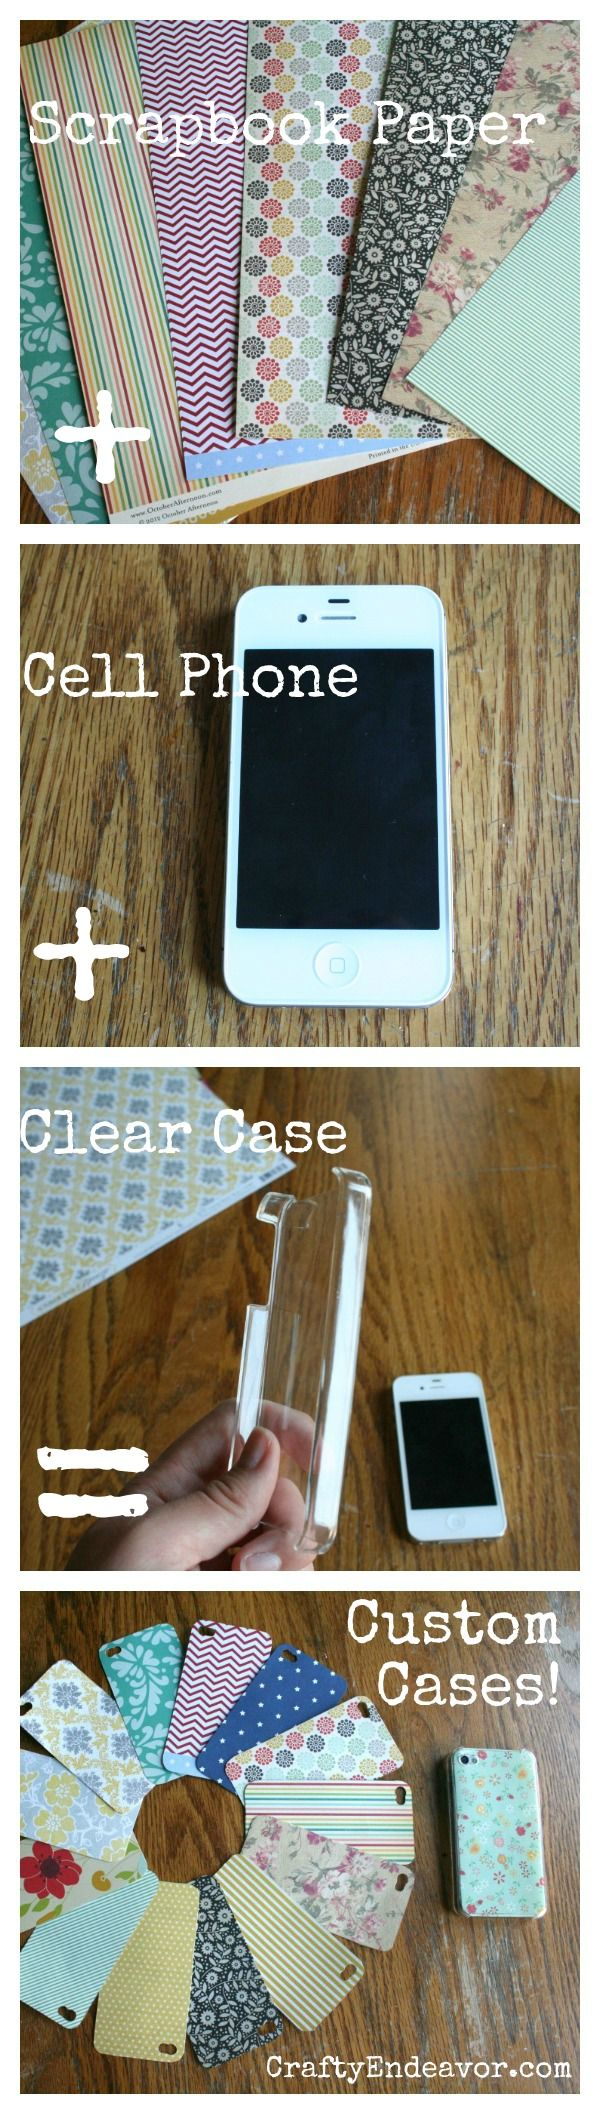 DIY custom cell phone cases - easy!